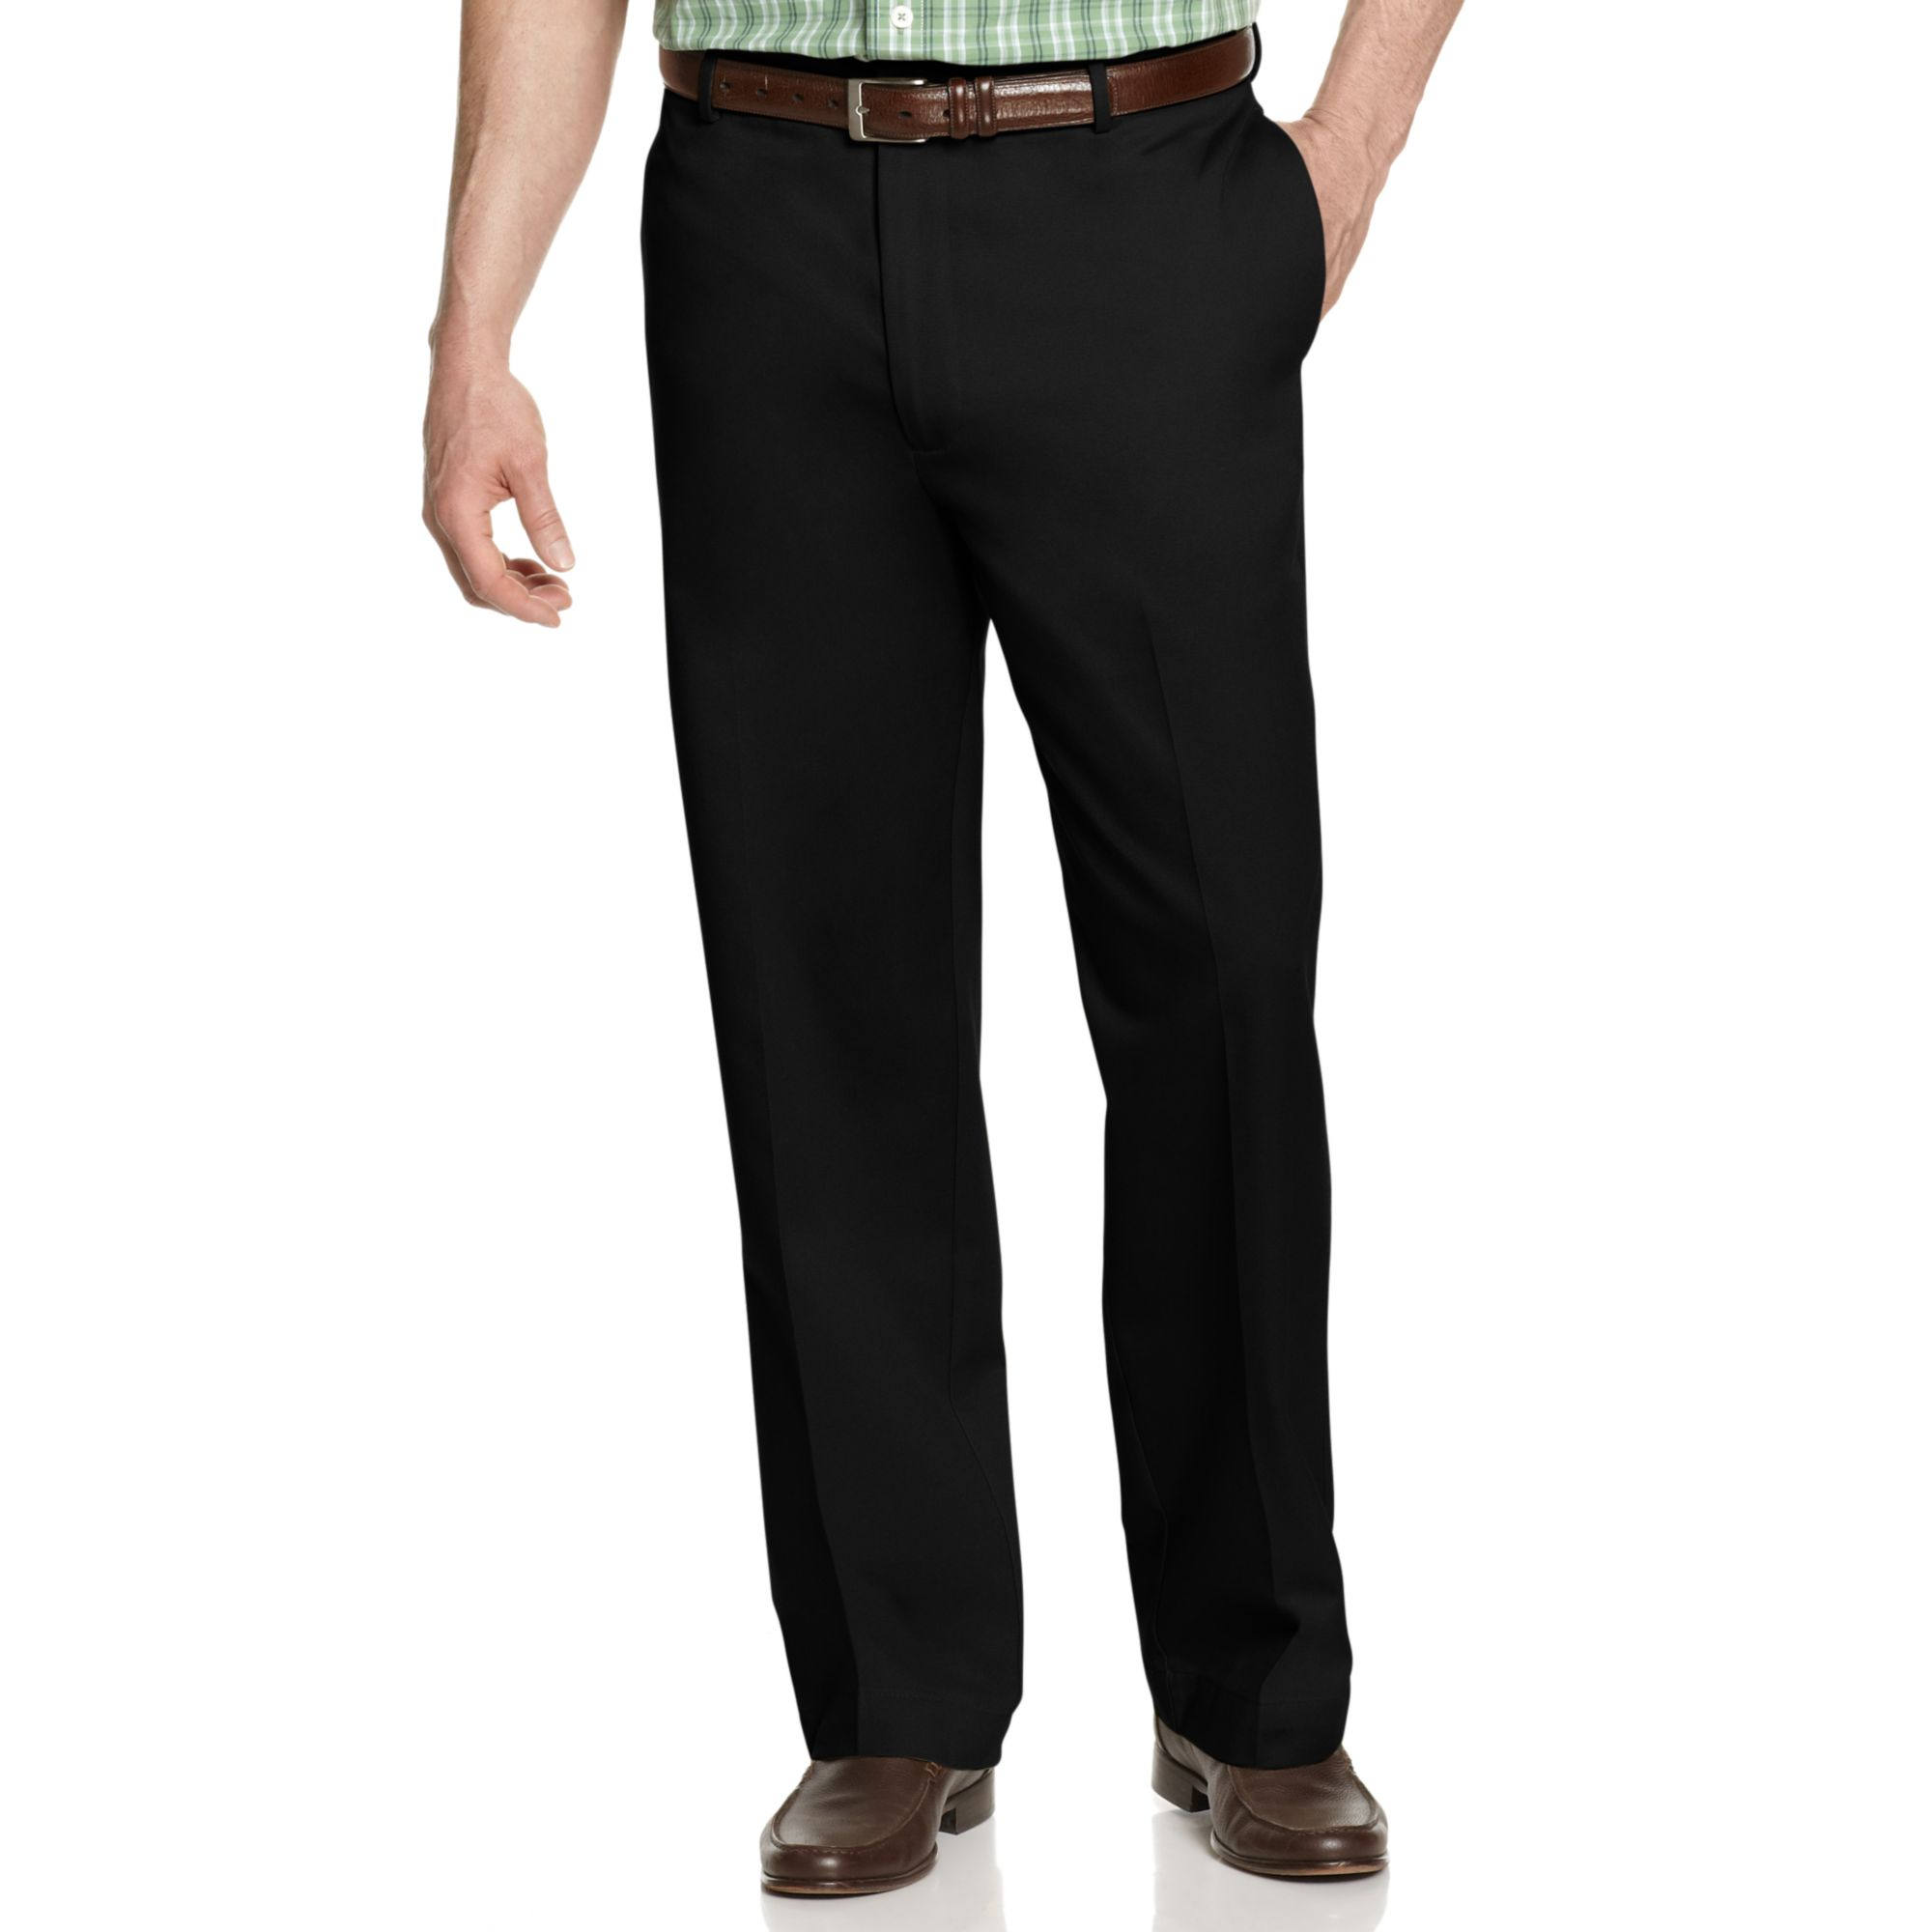 Find great deals on eBay for wrinkle free pants. Shop with confidence.